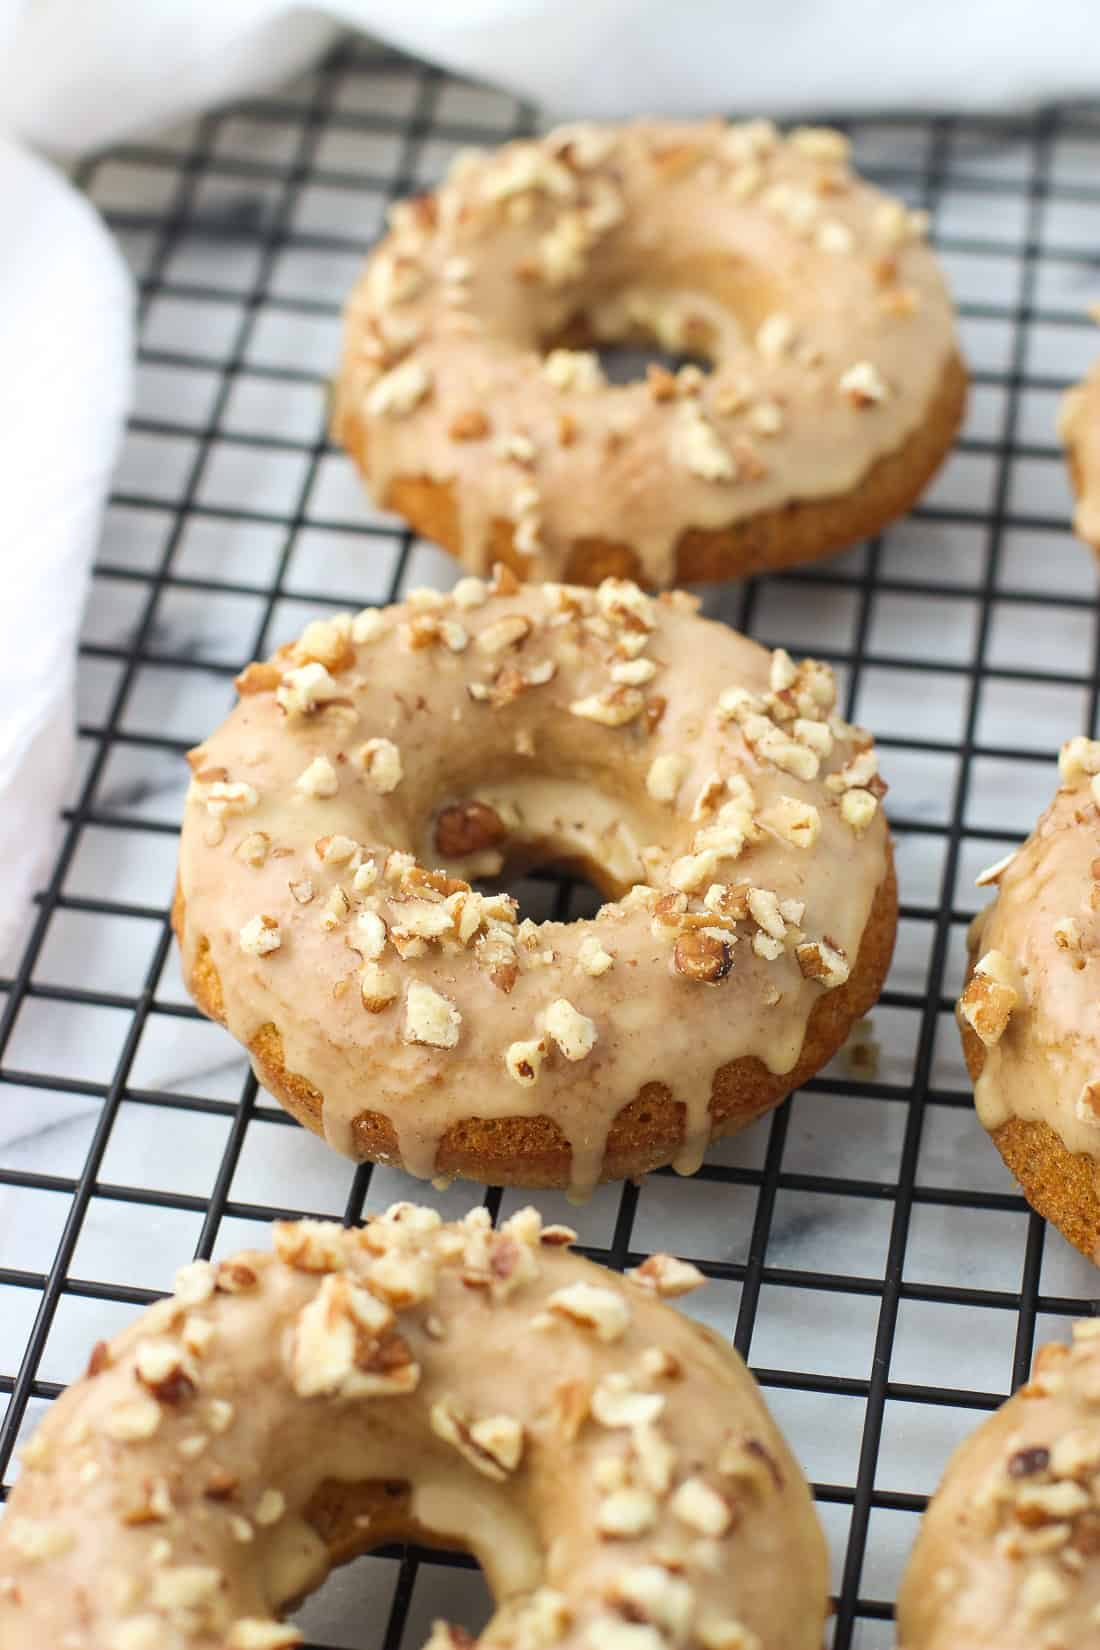 Pumpkin pecan donuts are warmly spiced and baked for a cake-y, pumpkin bread-like donut. They're covered in a maple vanilla glaze and more chopped pecans for a fall touch!